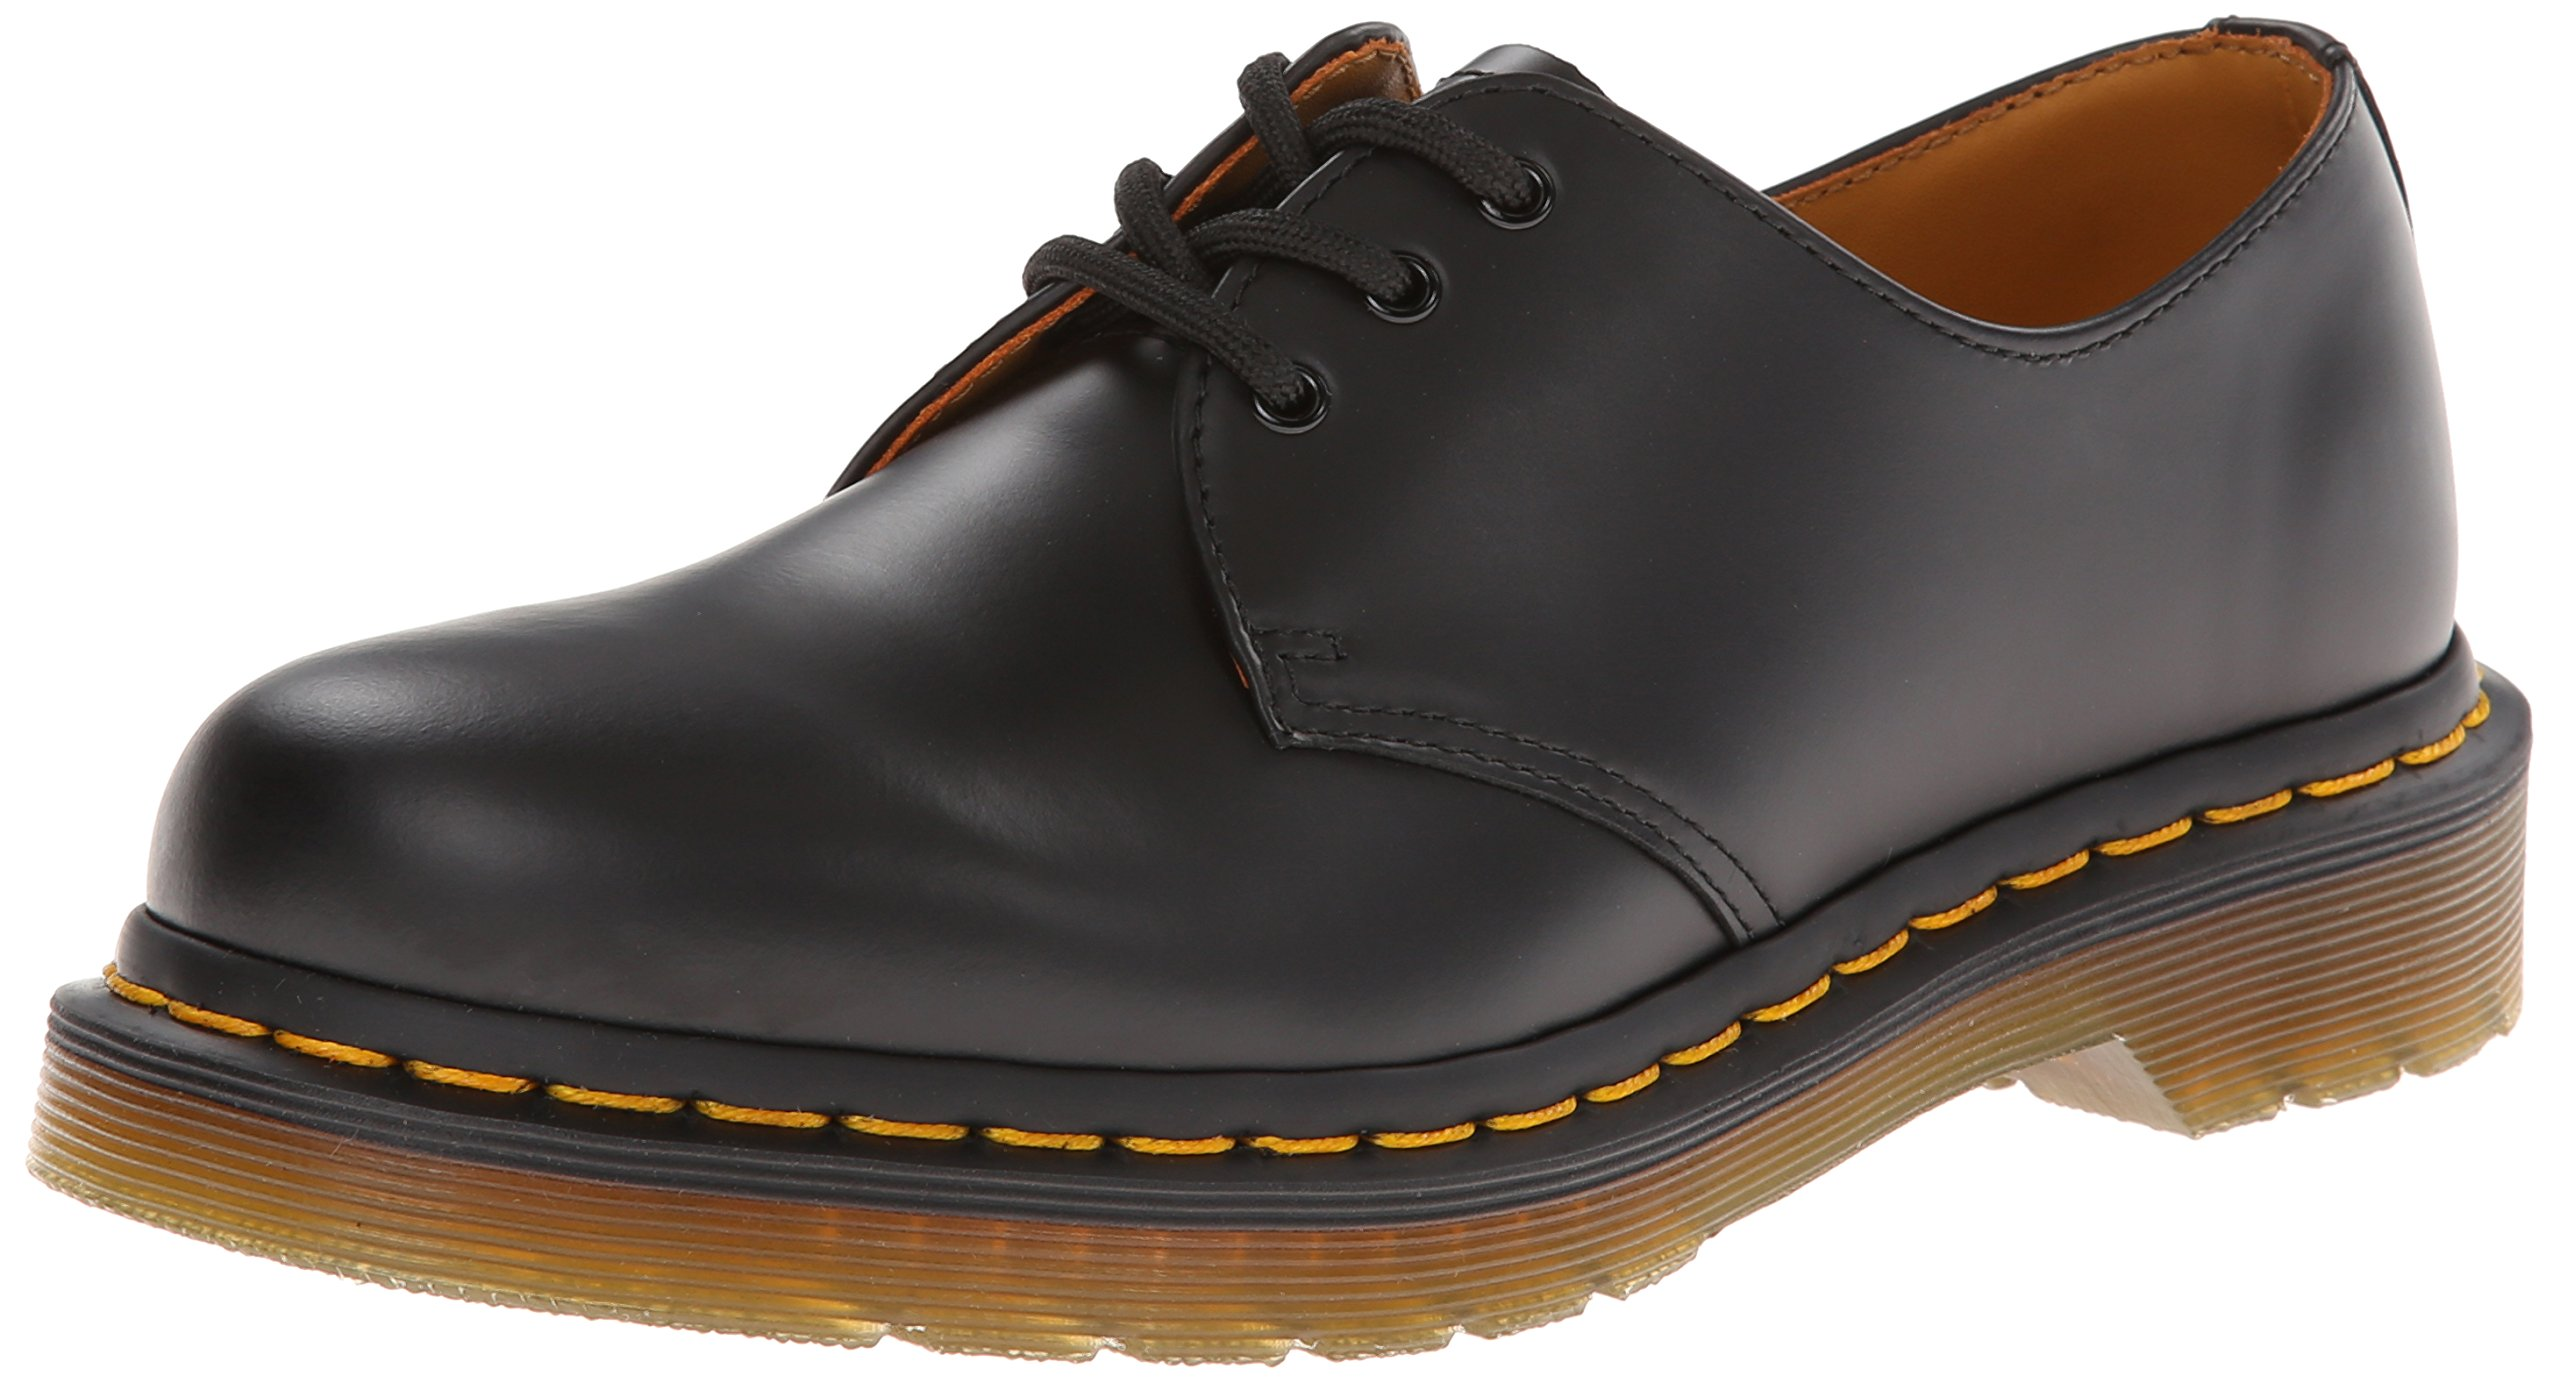 Dr. Martens 1461 Smooth Leather Shoes Black 1461 59 10085001, Size:36 by Dr. Martens